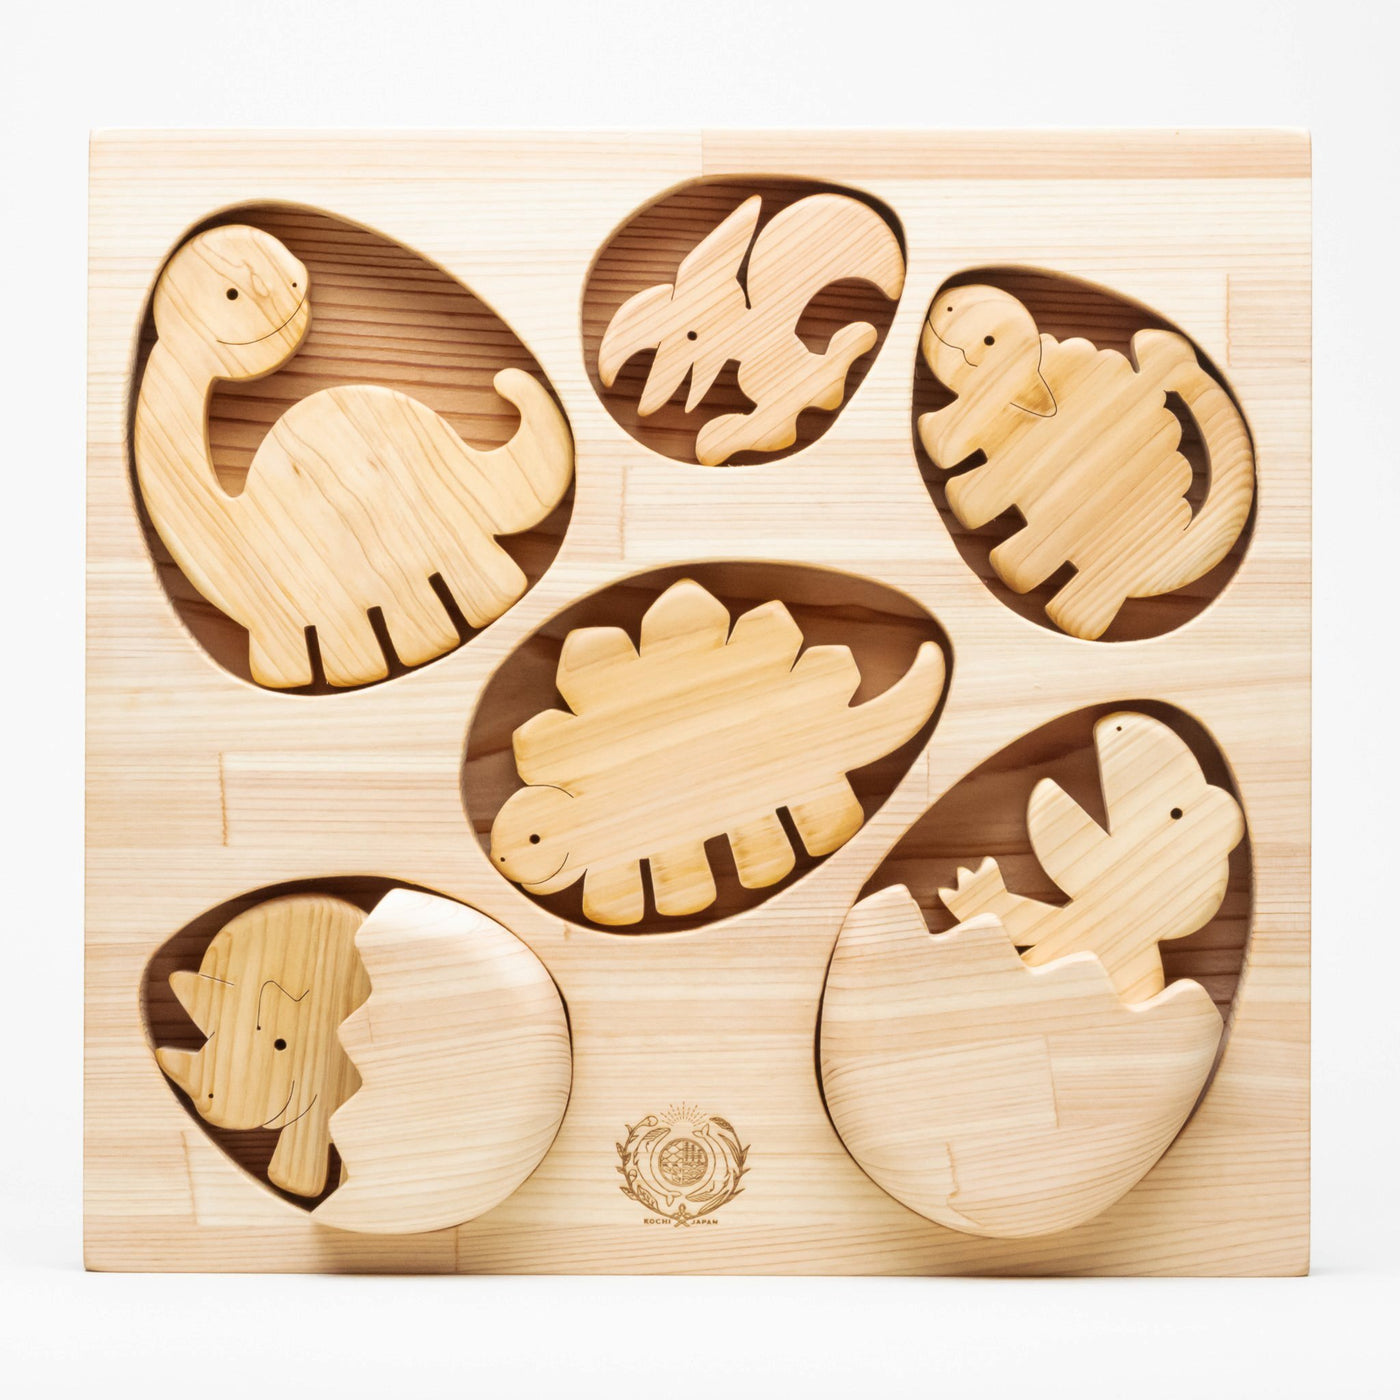 Whale Mountain Hatching Dinosaur Puzzle • The Coddiwomple Store